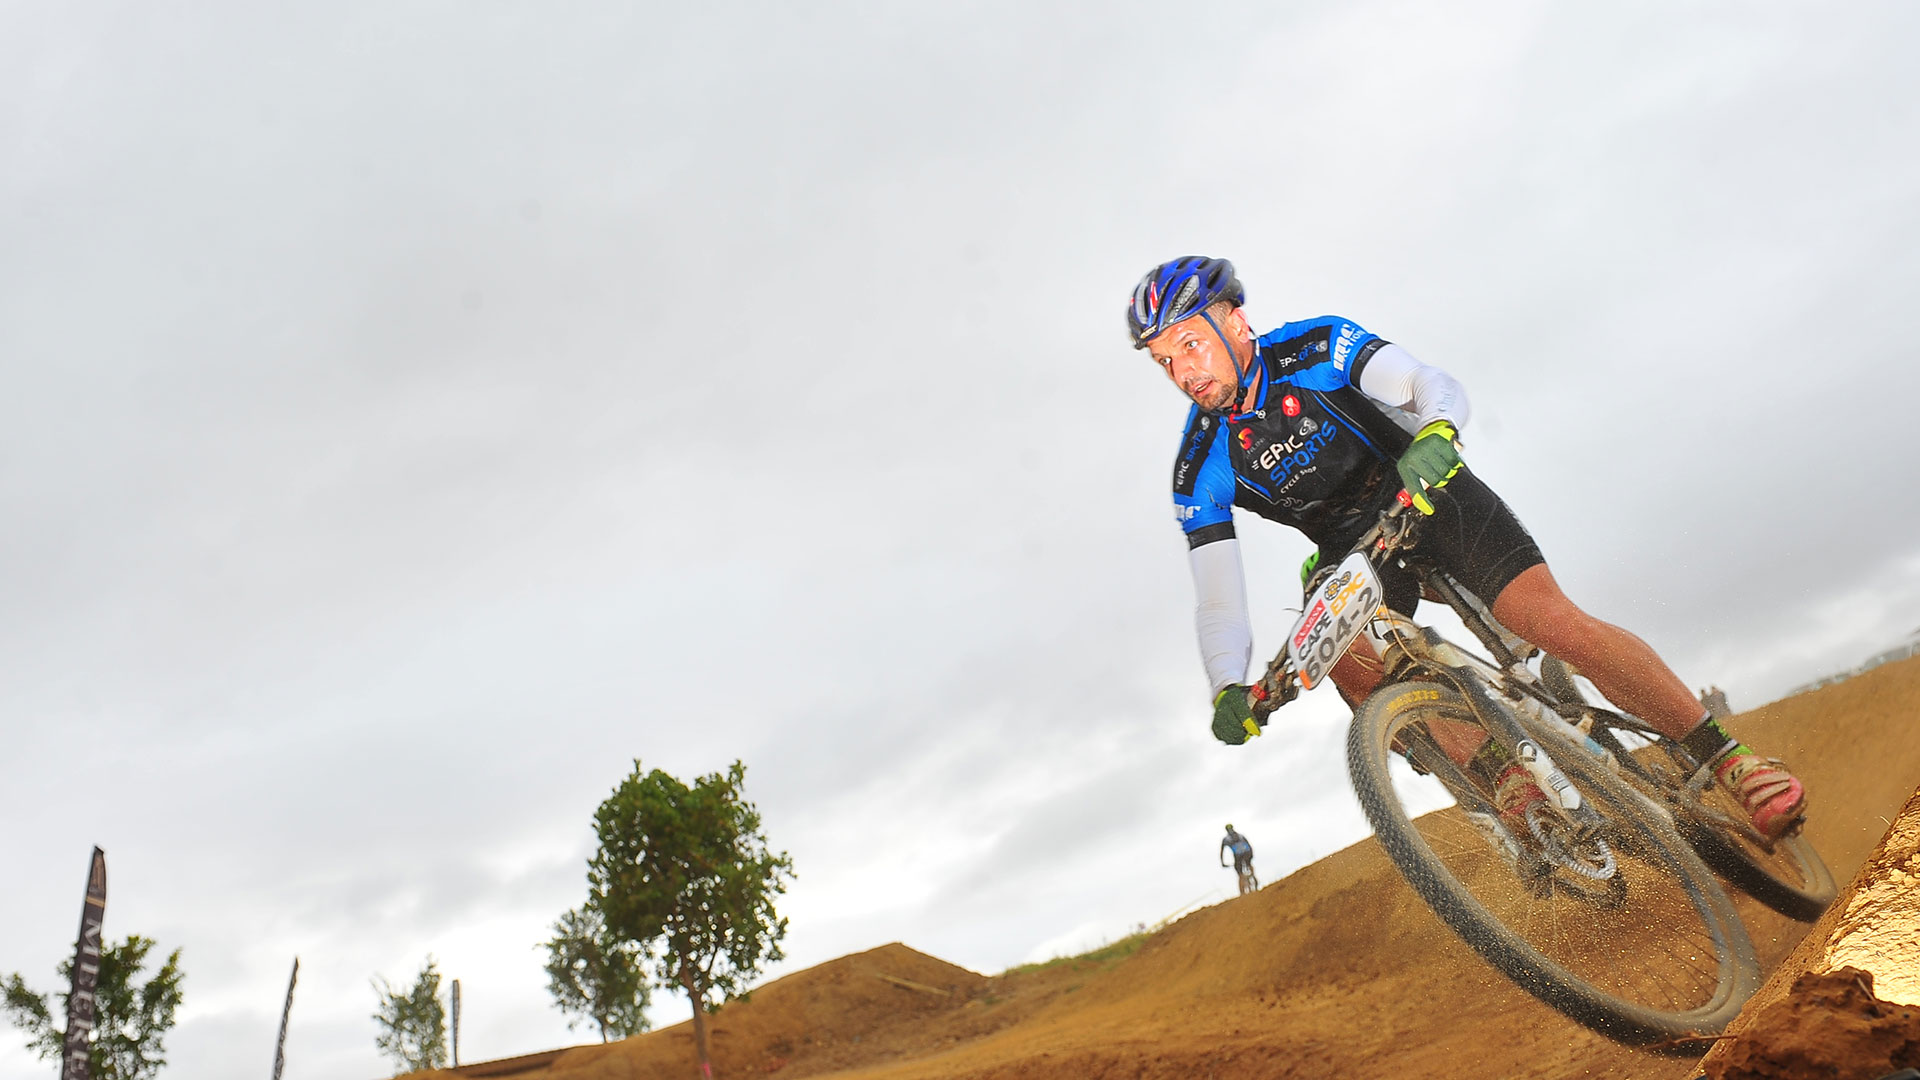 Coen van Tonder riding a mountain bike down a sandy slope